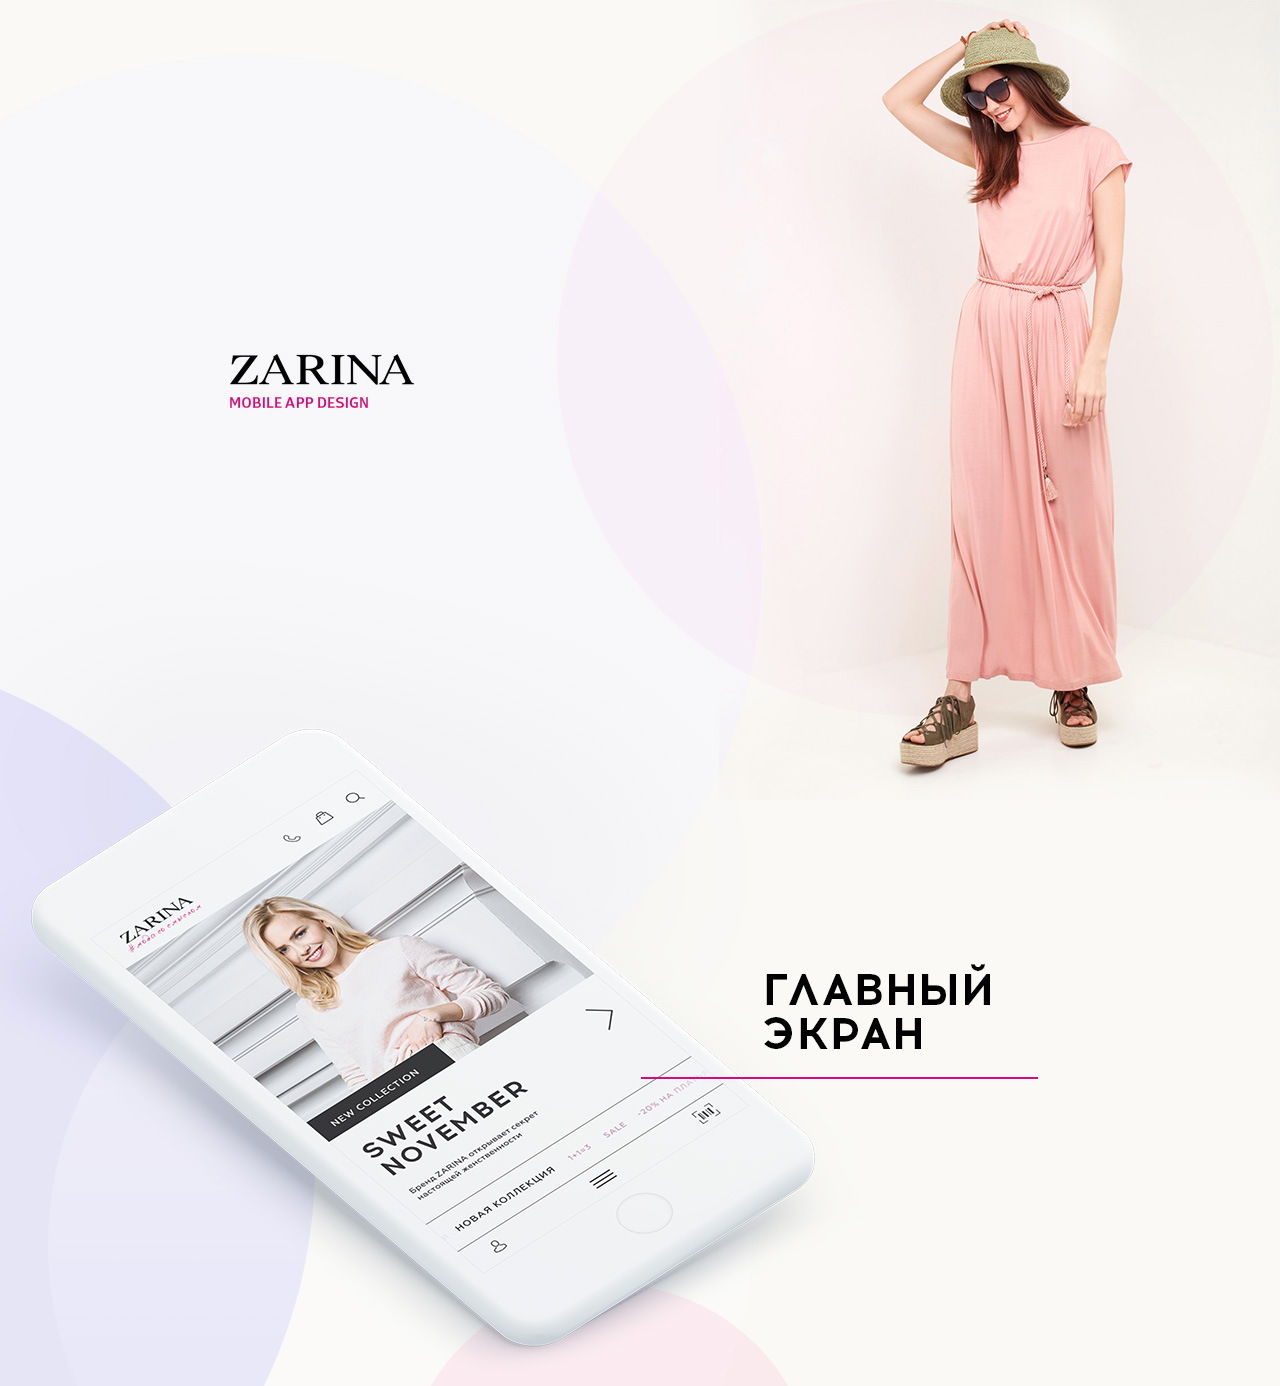 Zarina Аналитика / Дизайн © No Logo Studio